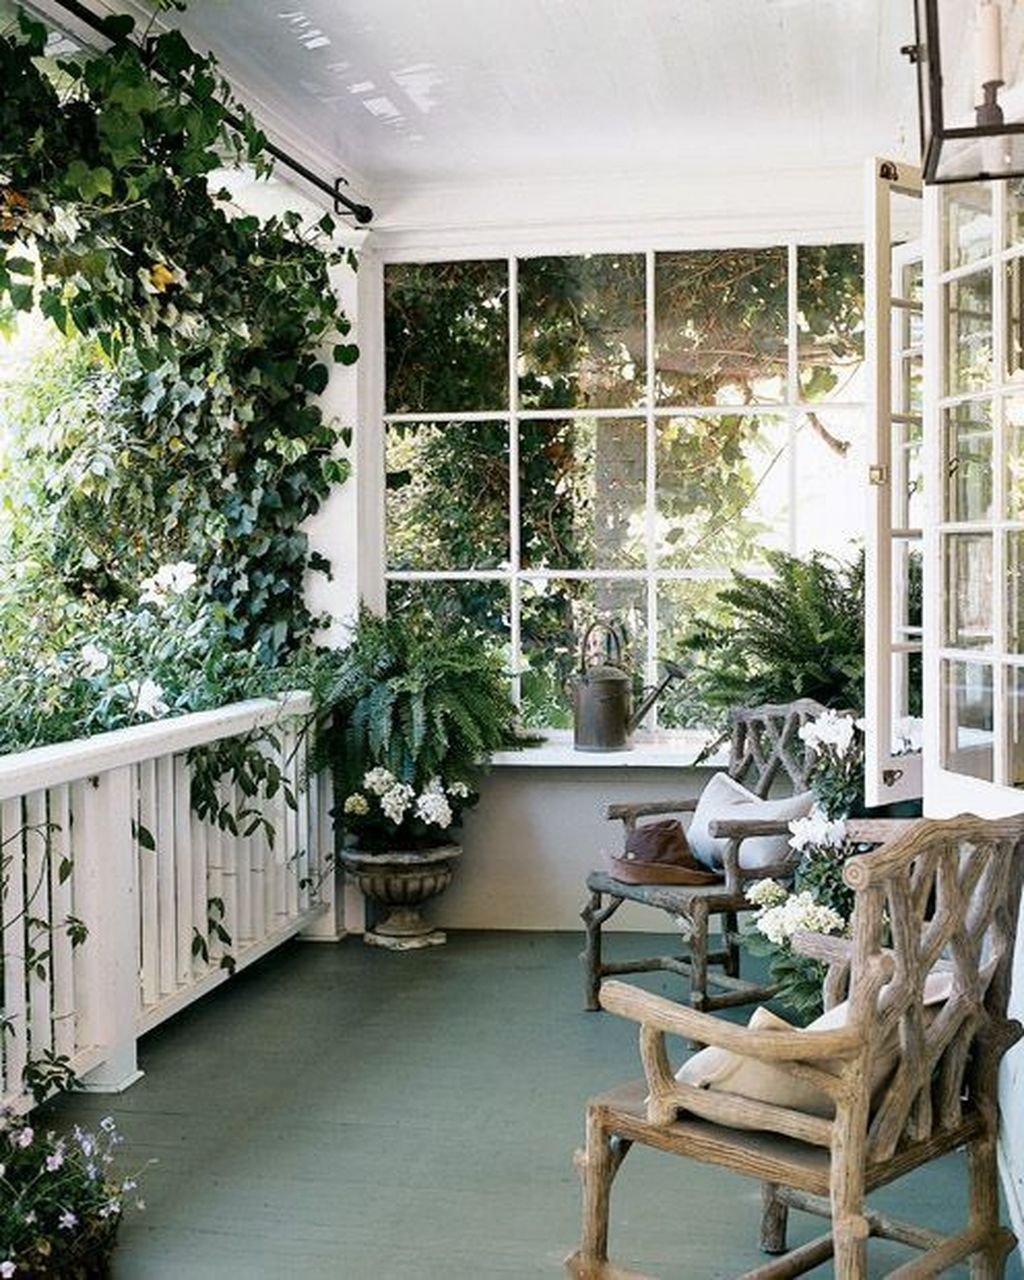 The Best Front Porch Ideas For Summer Decorating 04